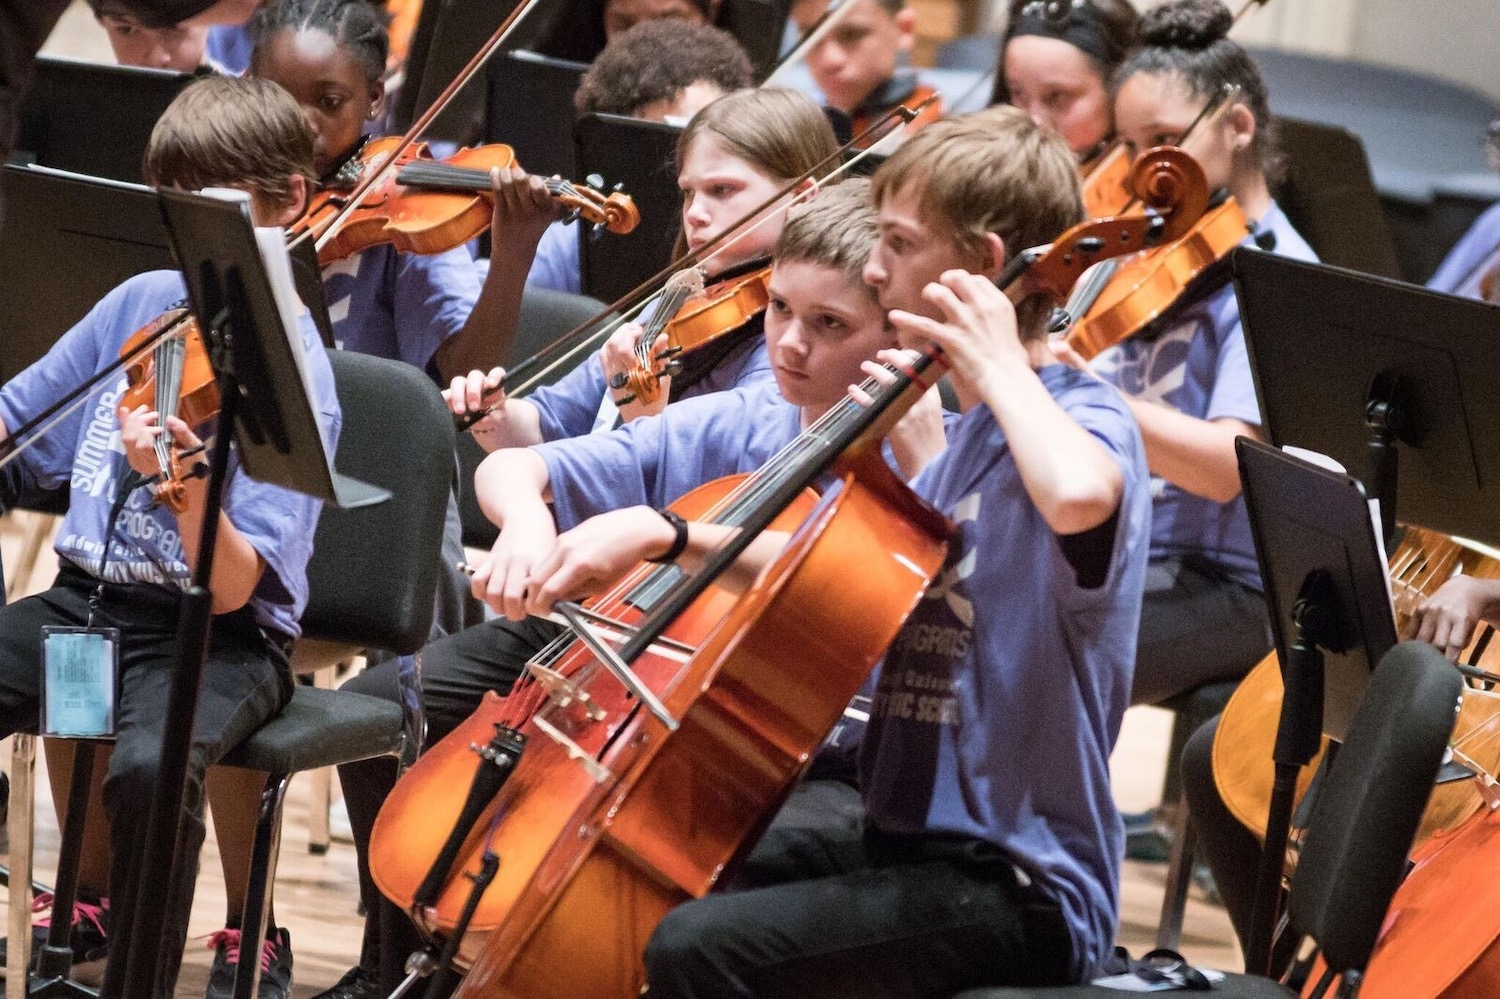 MHJF helped fund a youth orchestra program working in connection with the public school system.